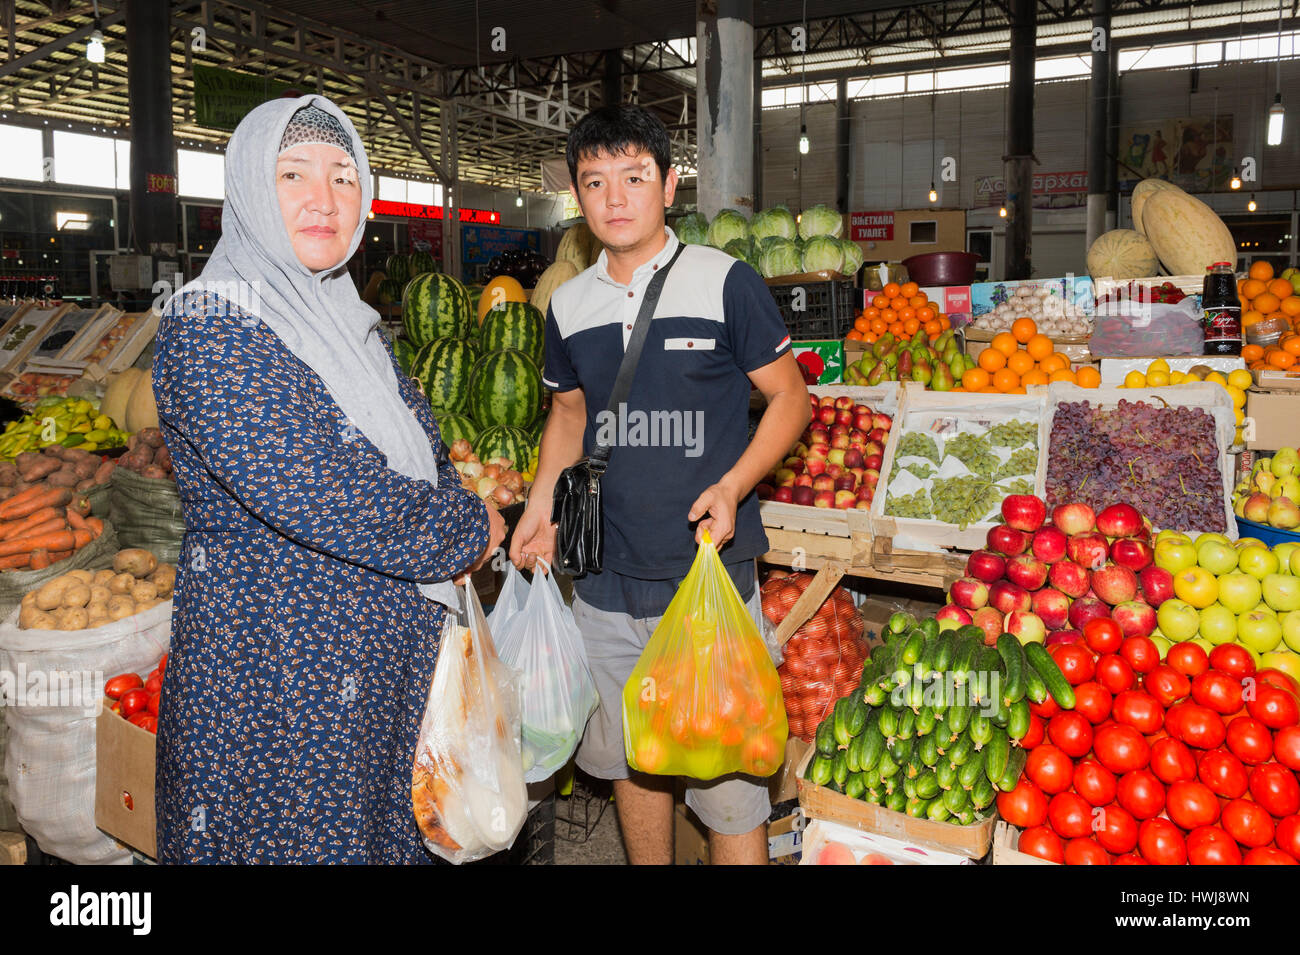 People buying vegetables, Samal Bazar, Shymkent, South Region, Kazakhstan, Central Asia, For editorial use only - Stock Image